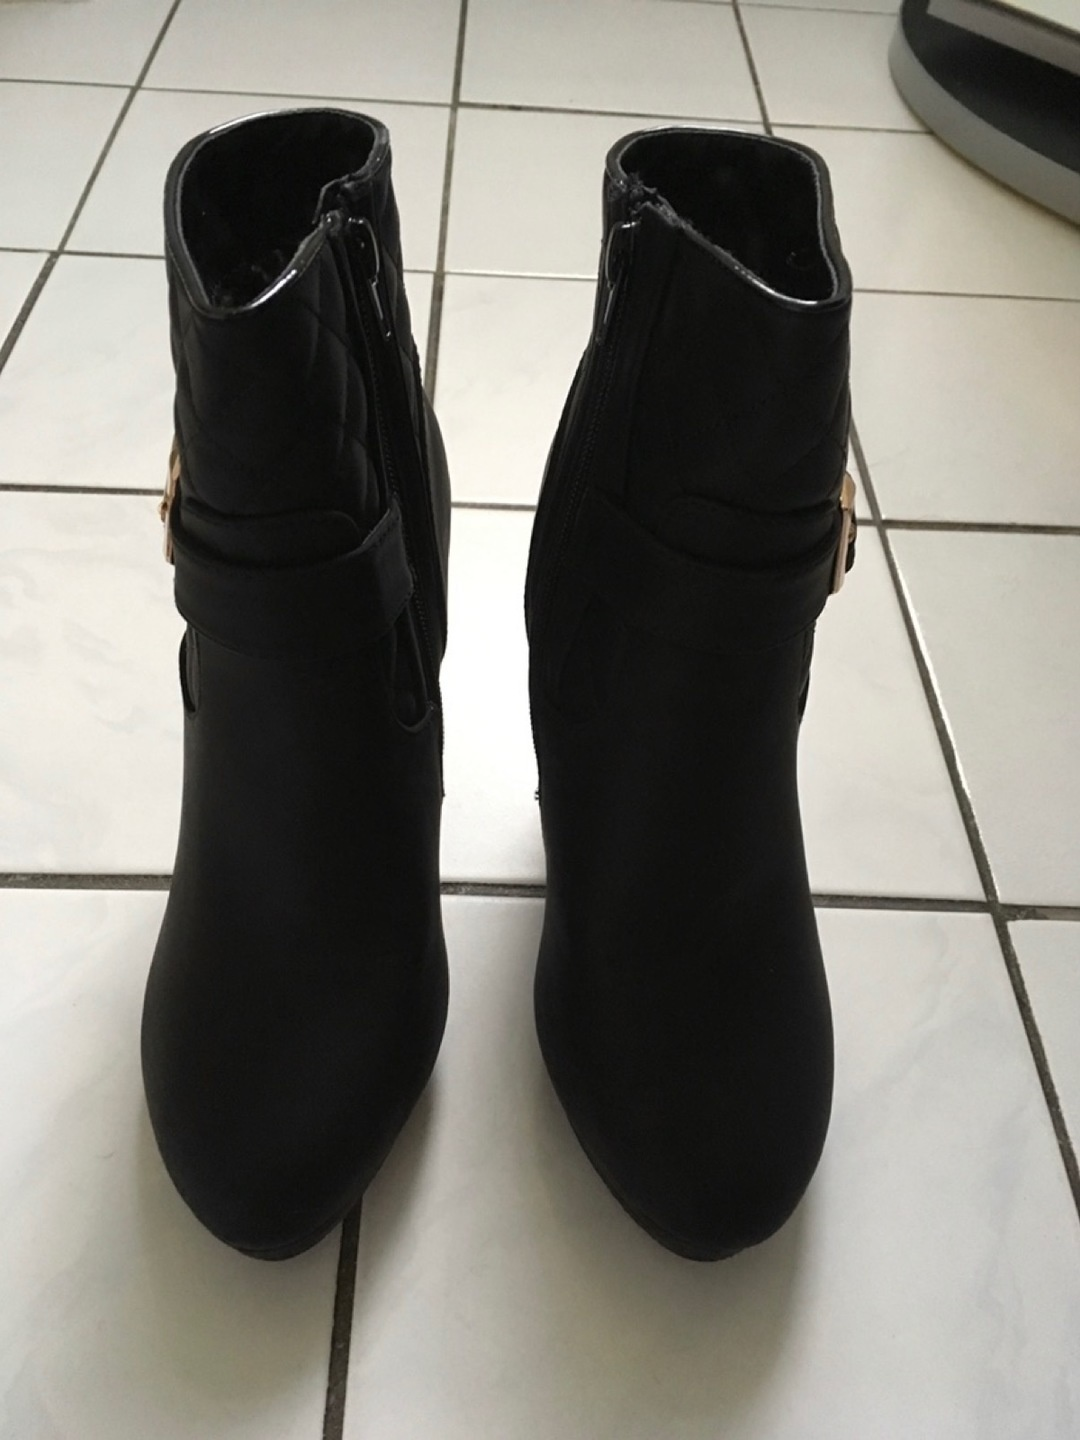 Women's boots - JULIET photo 3